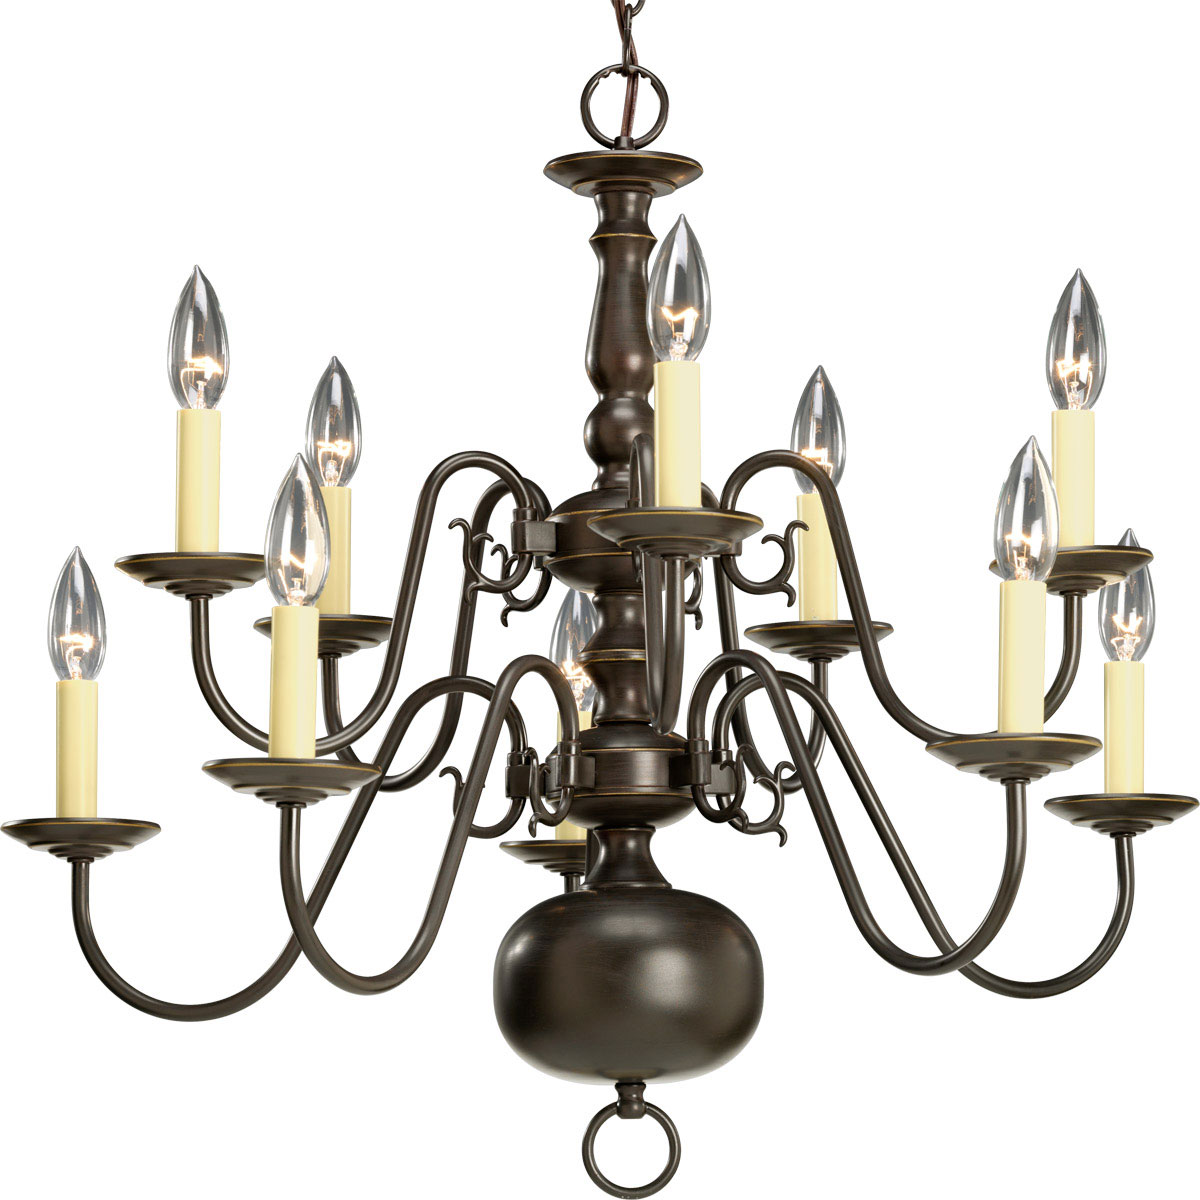 Colonial Williamsburg Chandeliers – Colonial Chandeliers Lighting